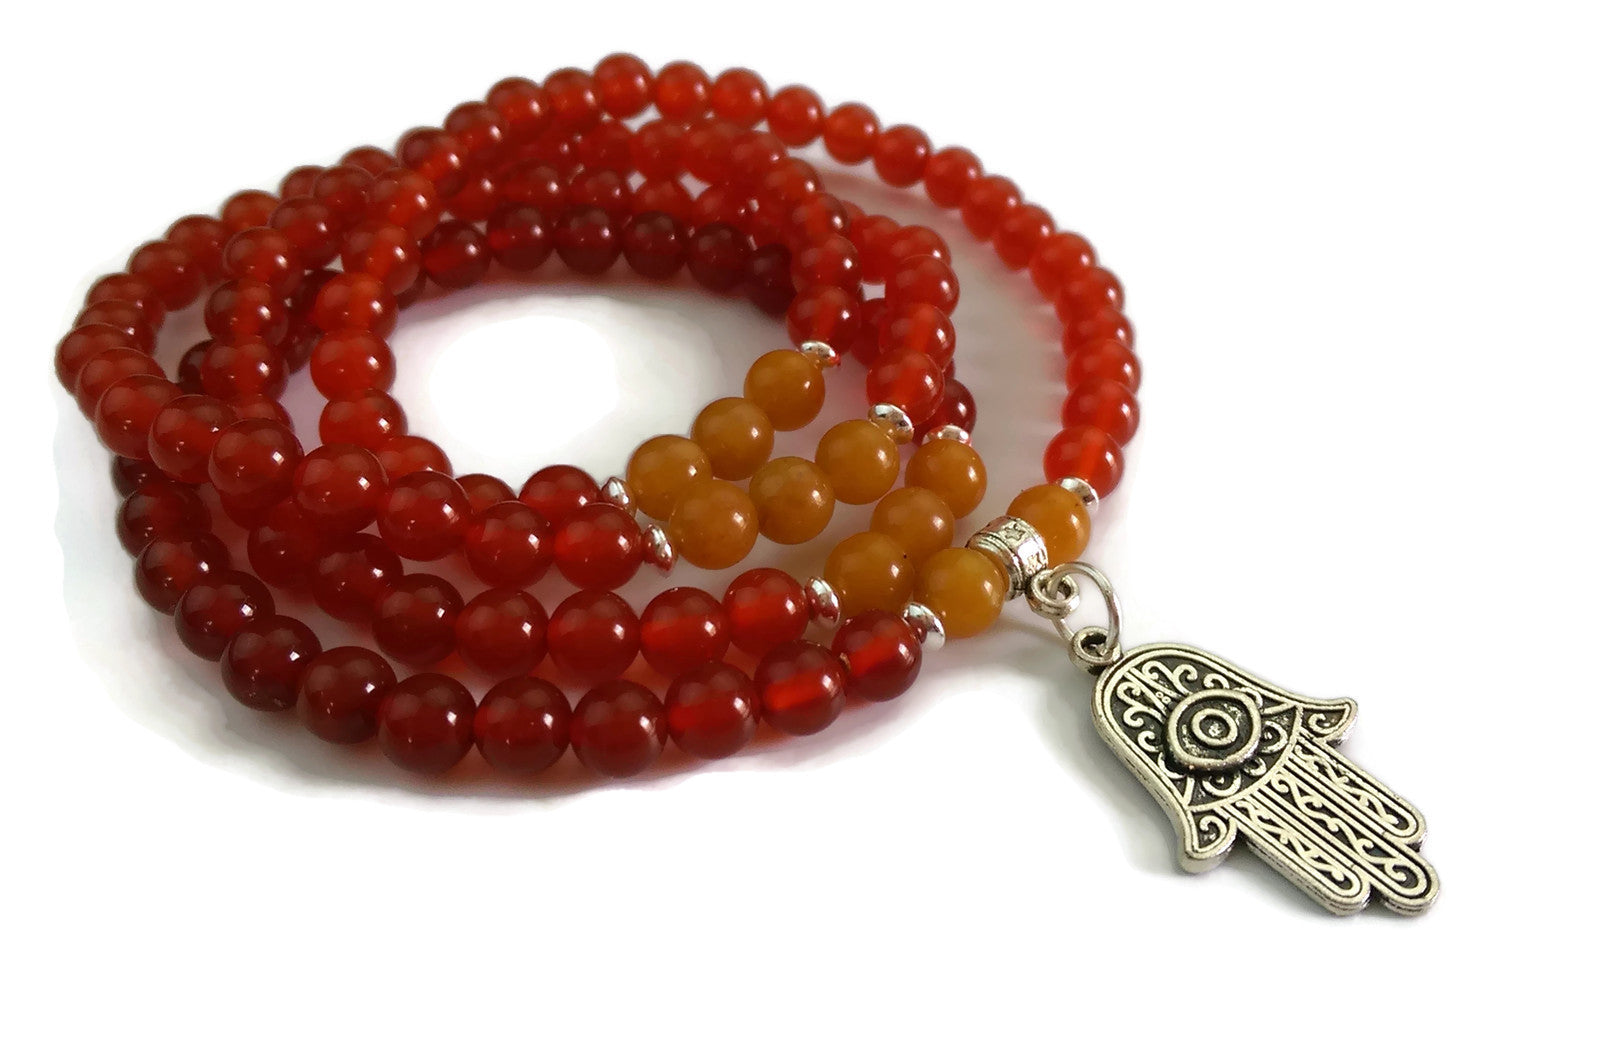 6mm Red Carnelian and Topaz with 925 Silver Wrist Wrap Mala Bracelet with Hamsa Charm